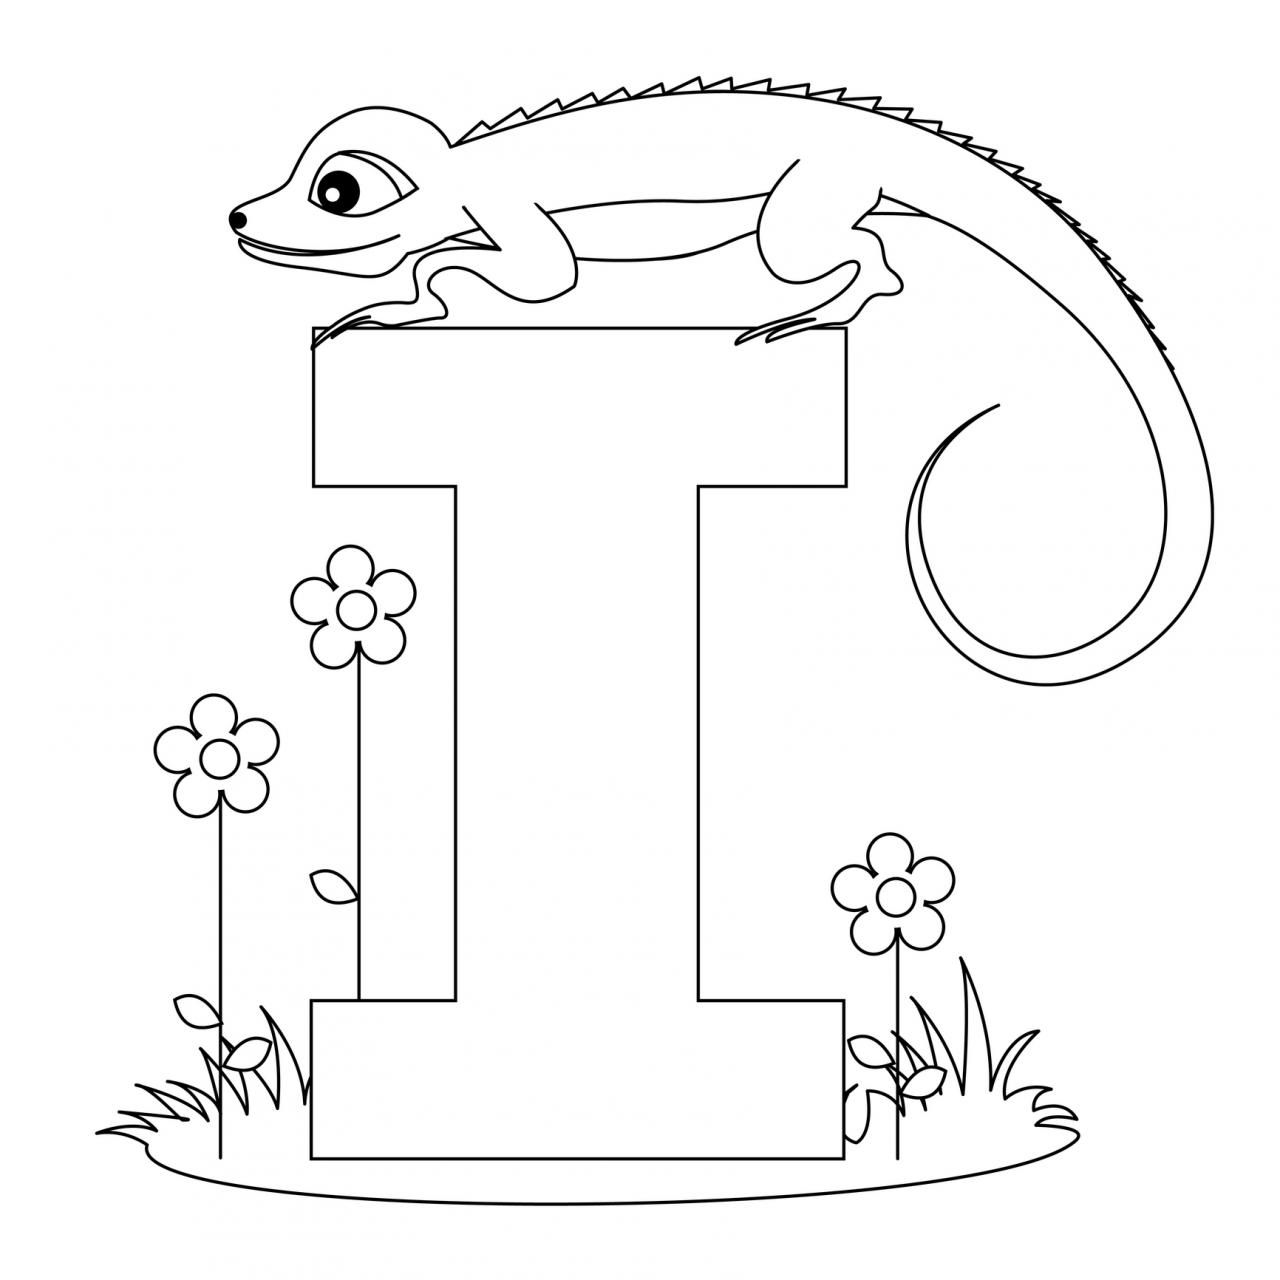 http://colorings.co/letter-i-coloring-pages-for-preschoolers ...